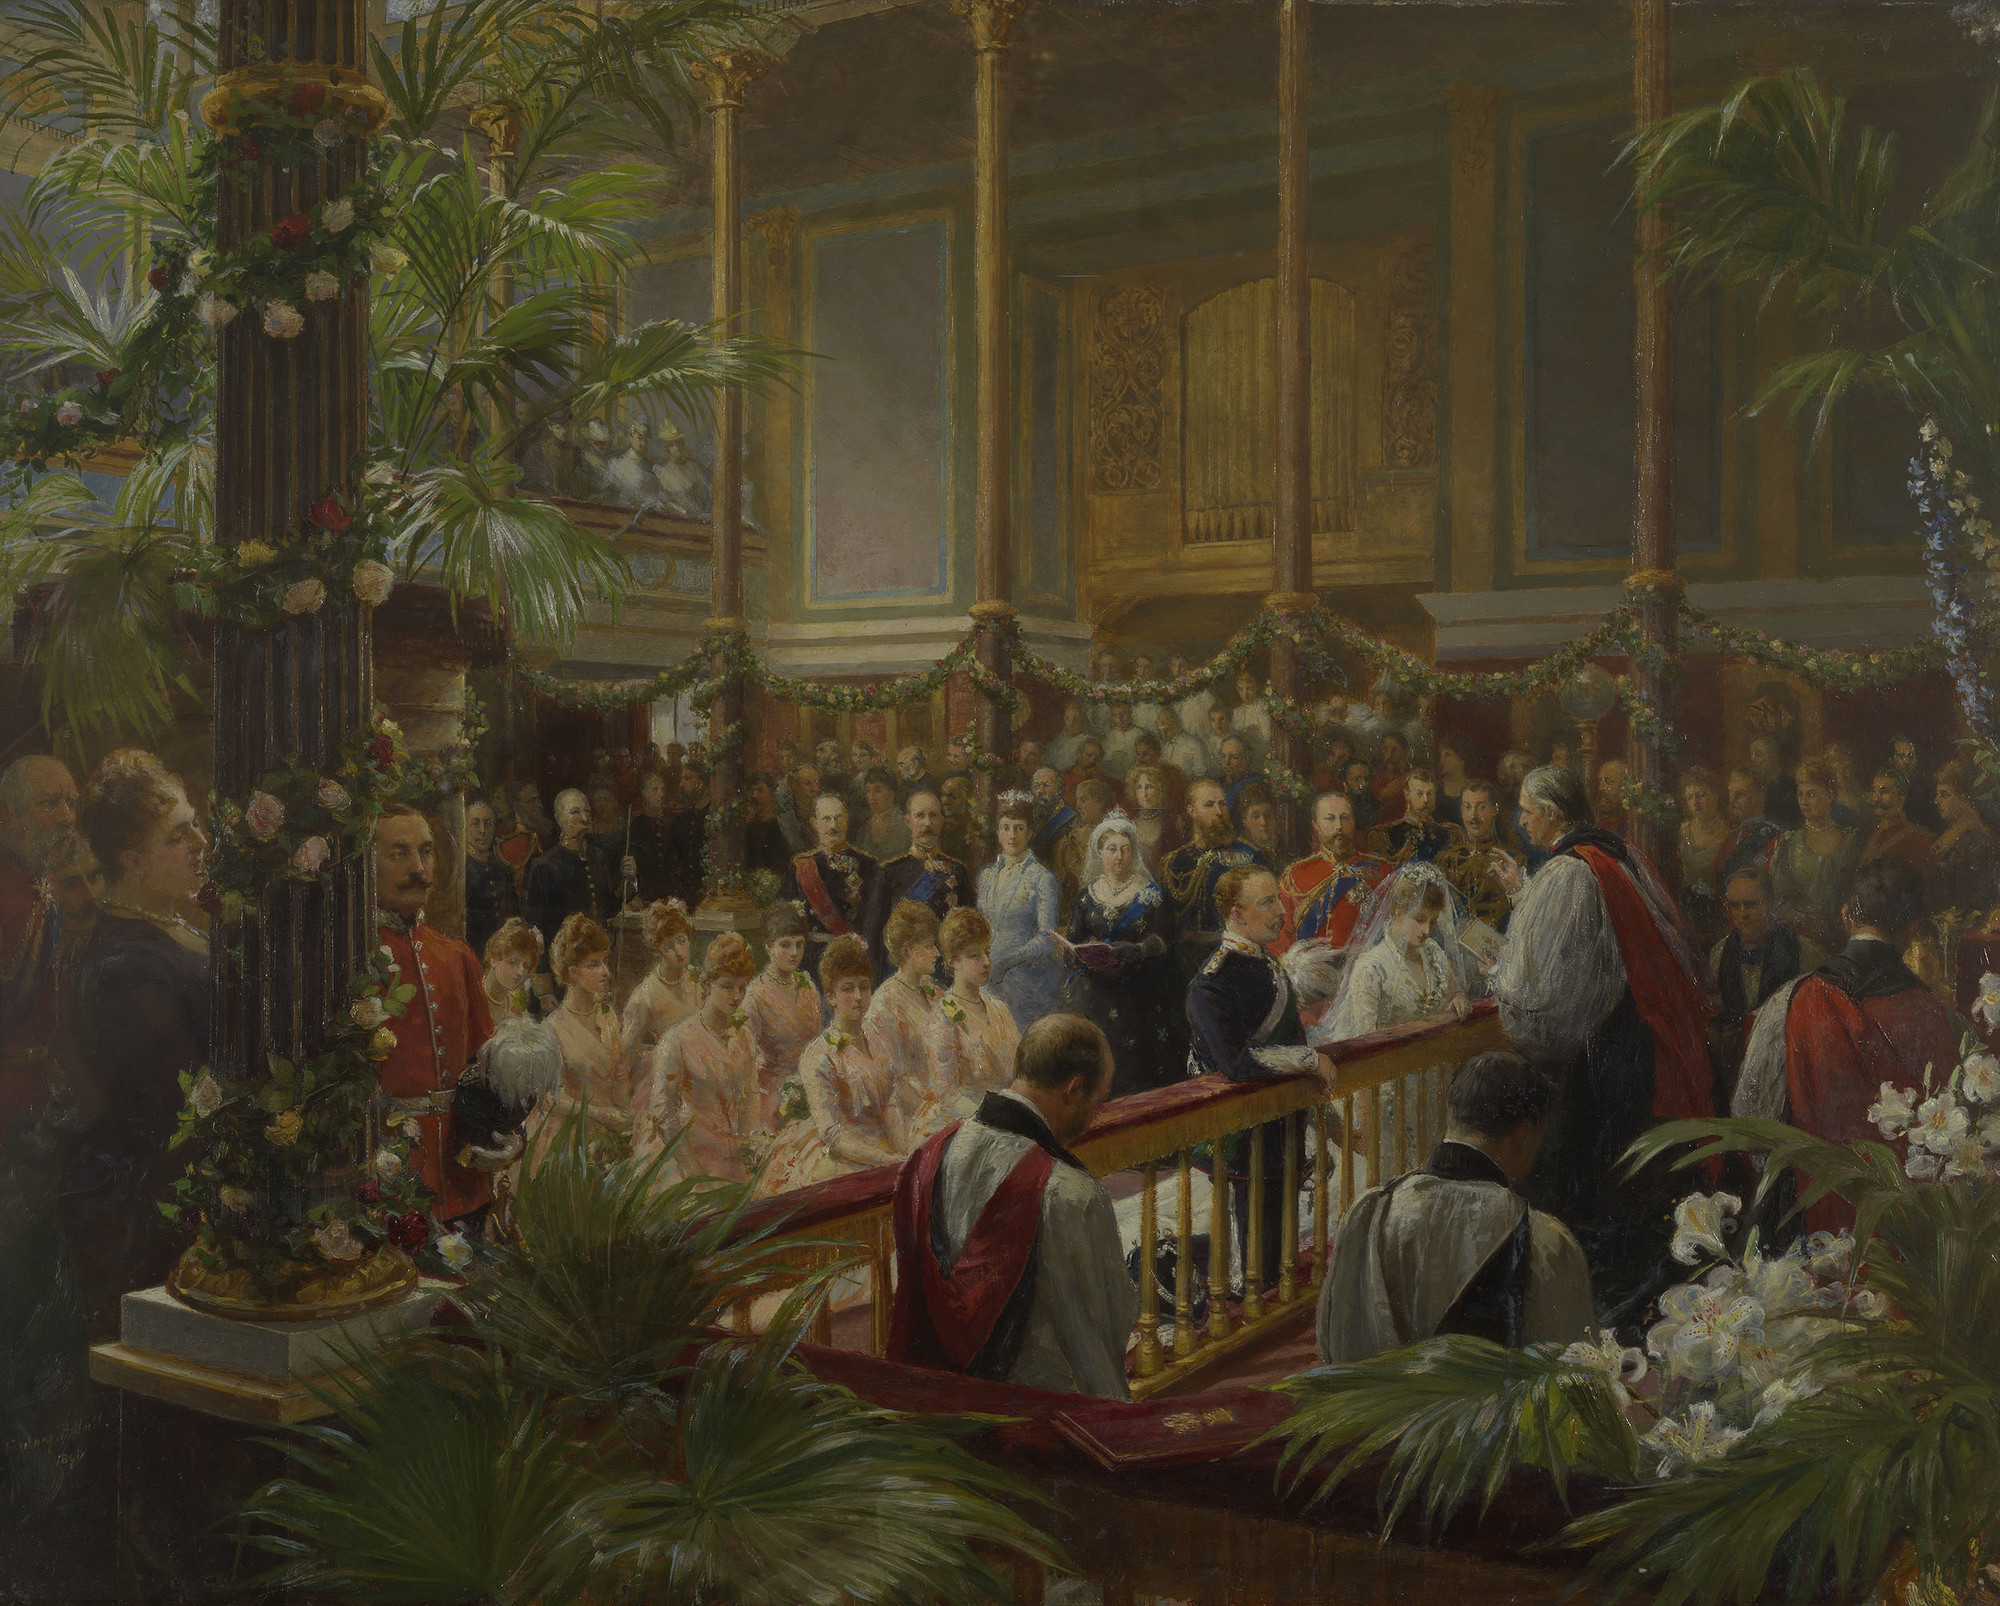 wedding in art: Sir Sydney Prior Hall, The Marriage of Princess Louise of Wales with the Duke of Fife at Buckingham Palace, ca. 1890, Royal Collection Trust, London, UK.